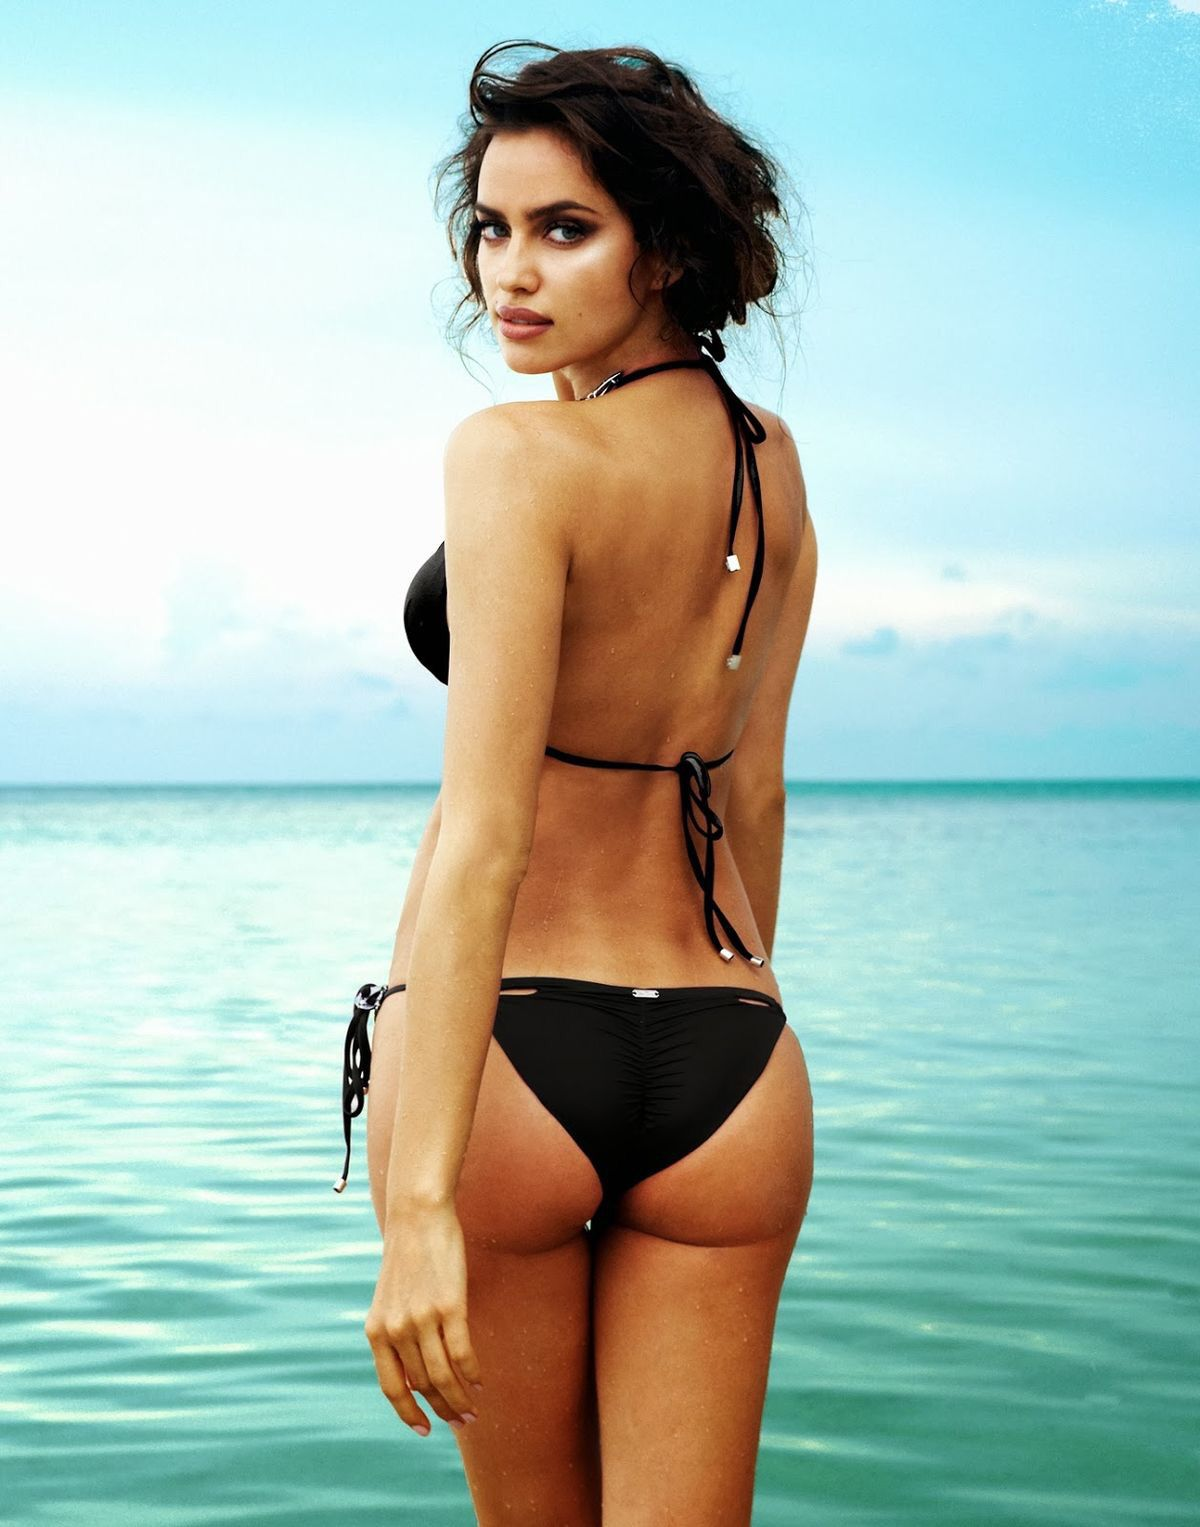 Hottest female bodies almost nude